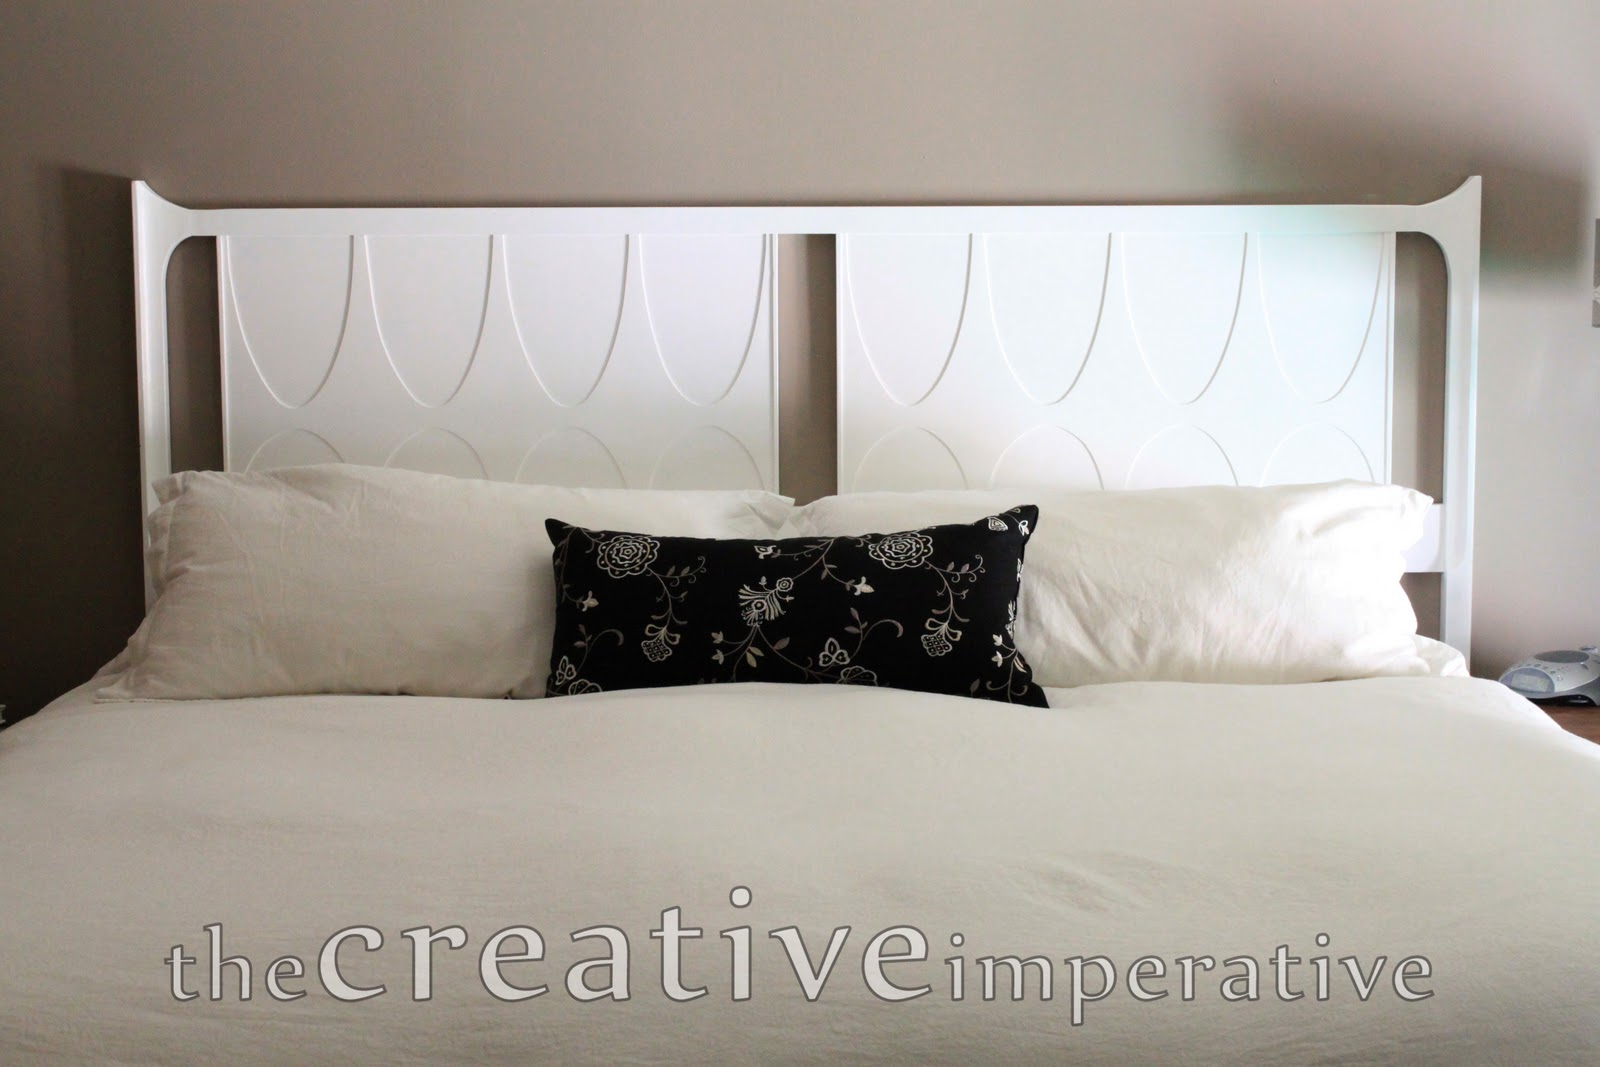 The Creative Imperative: White Painted Headboard